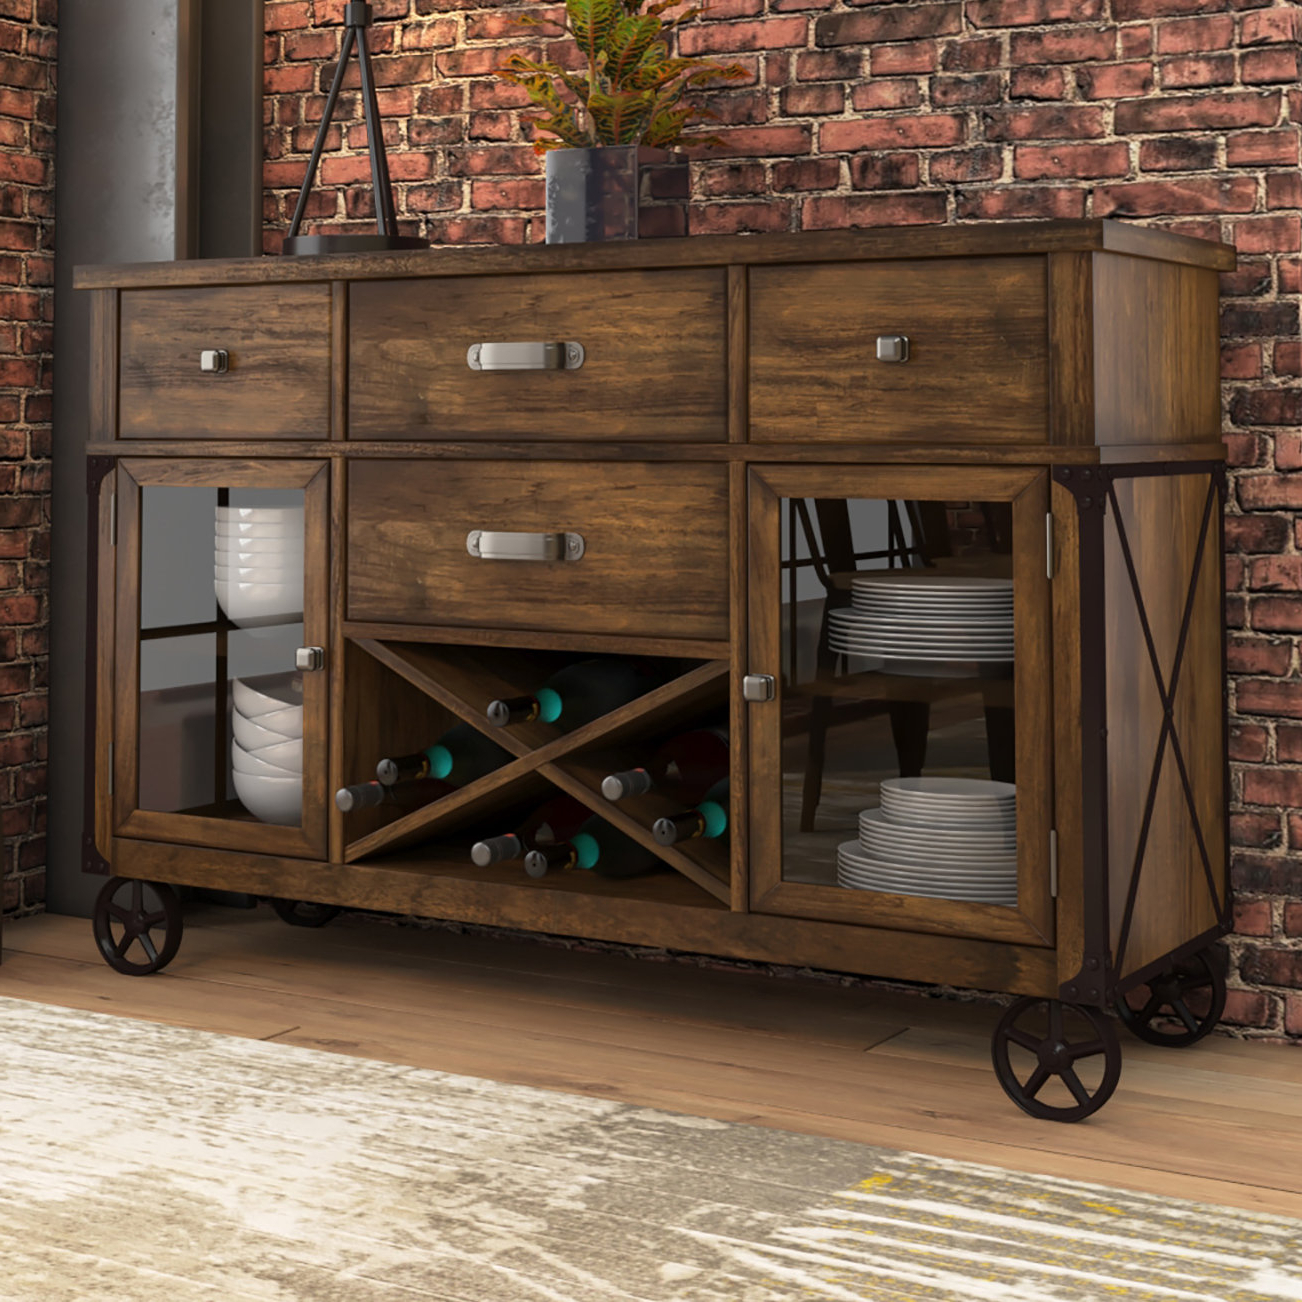 Farmhouse & Rustic Medium Brown Wood Sideboards & Buffets Pertaining To 2020 Chaffins Sideboards (View 11 of 20)